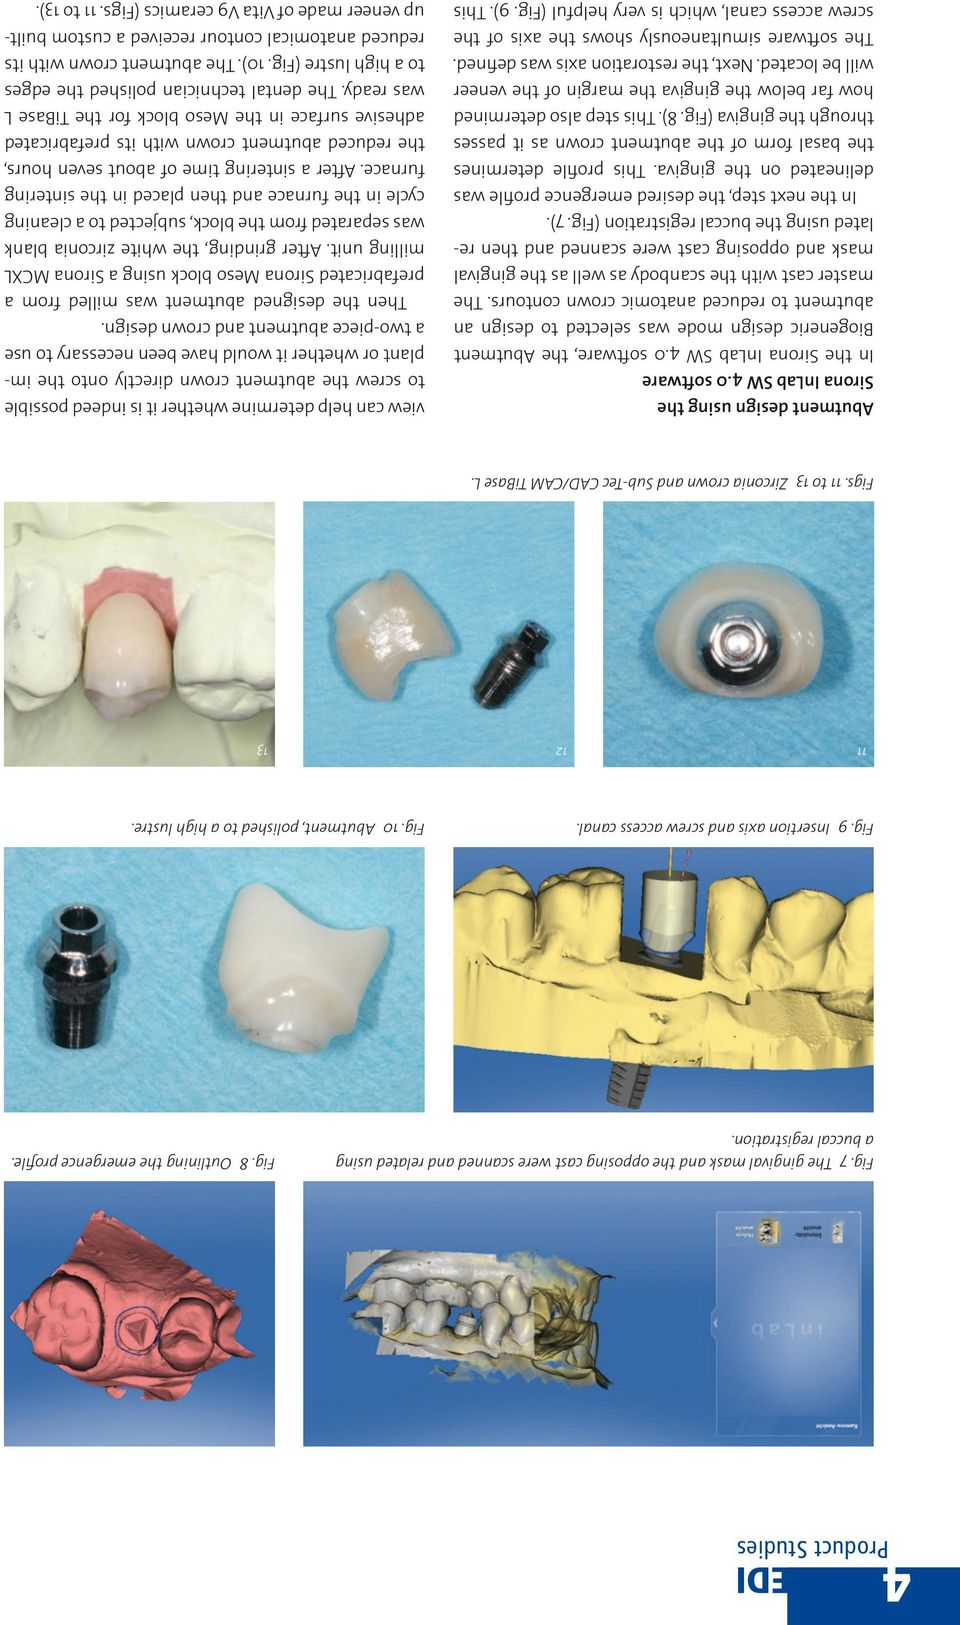 0 software, the Abutment Biogeneric design mode was selected to design an abutment to reduced anatomic crown contours.